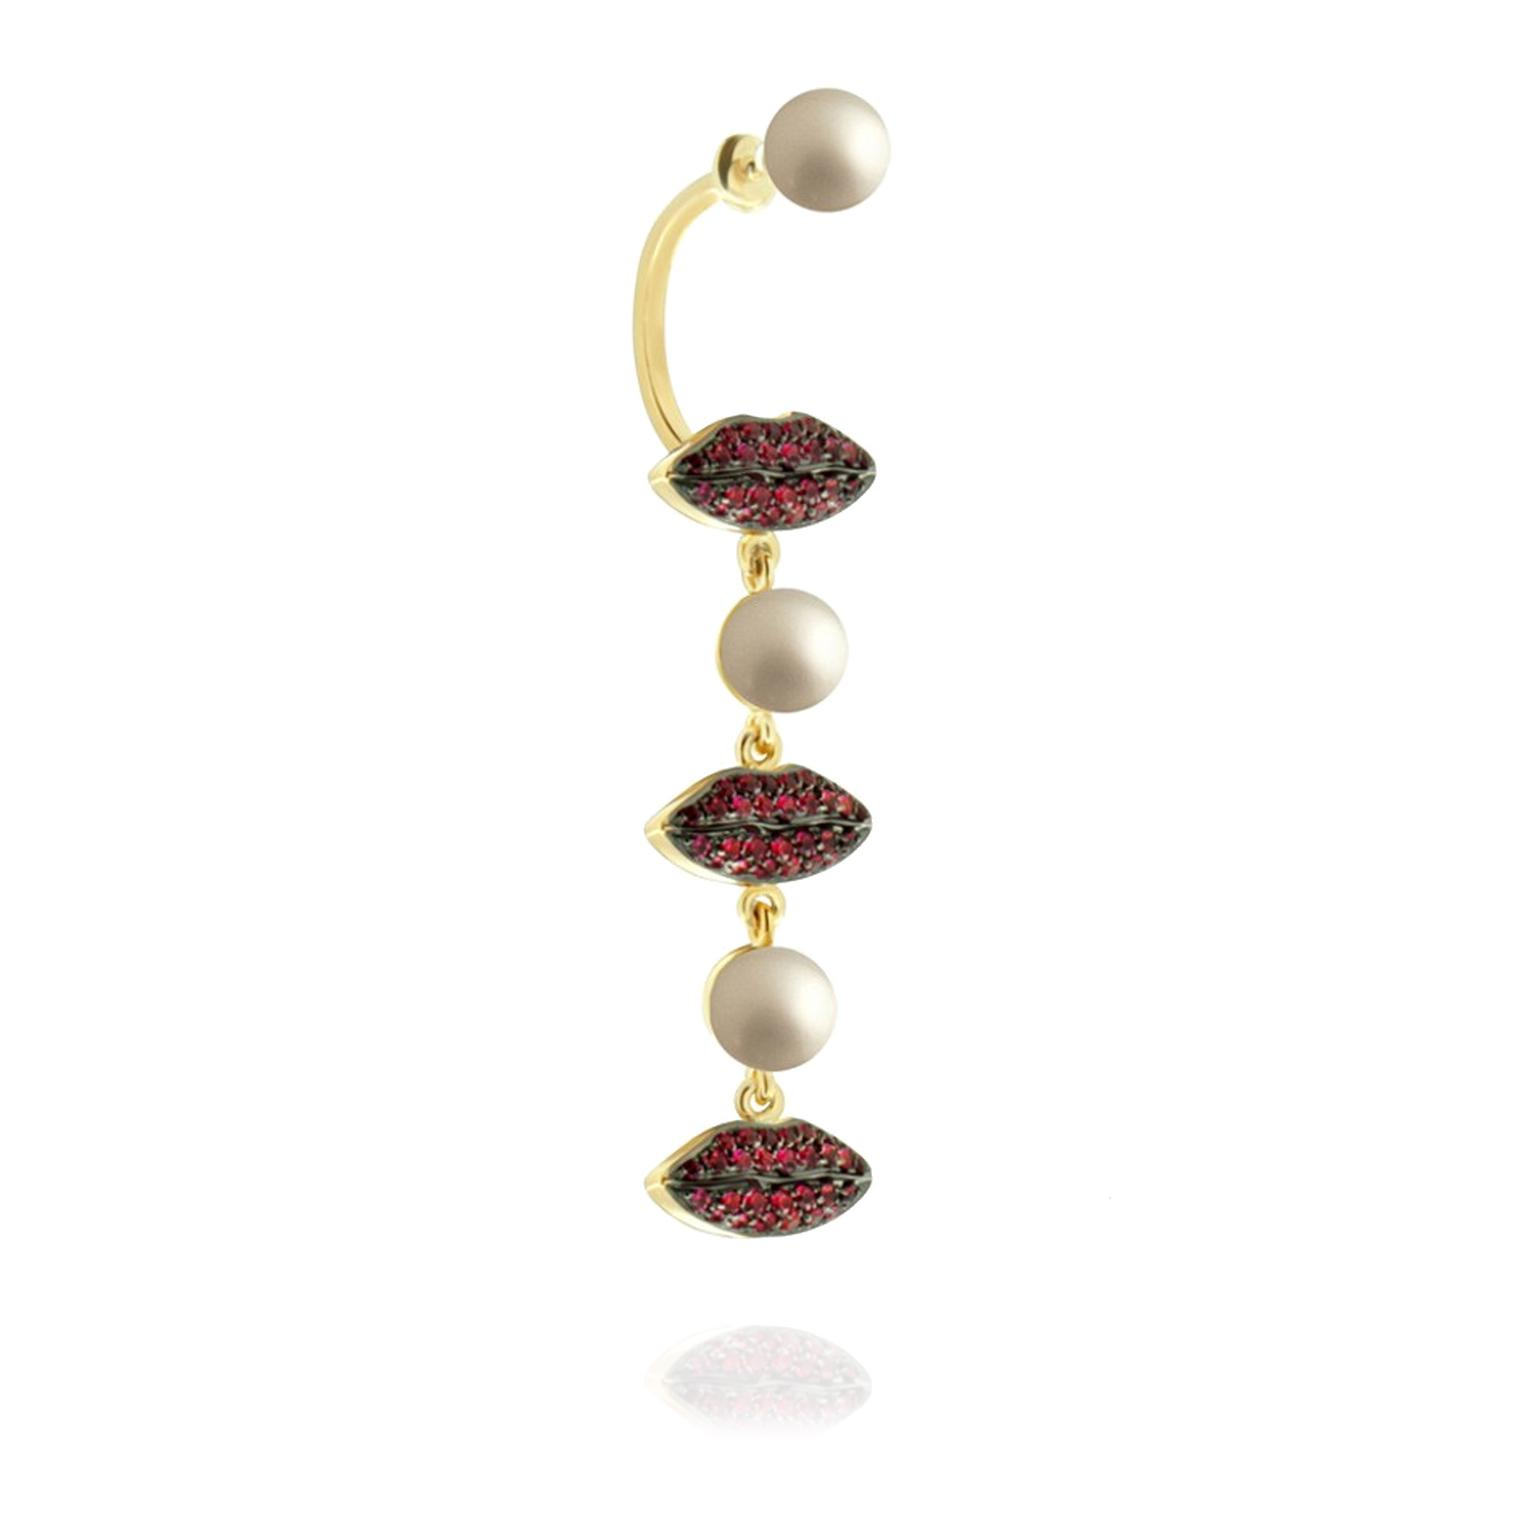 Delfina Delettrez 'Lips' ruby earring Cheap Sale Brand New Unisex Sale Pick A Best Amazing Price Sale Online Sale Discount Free Shipping Fast Delivery 74Cheu